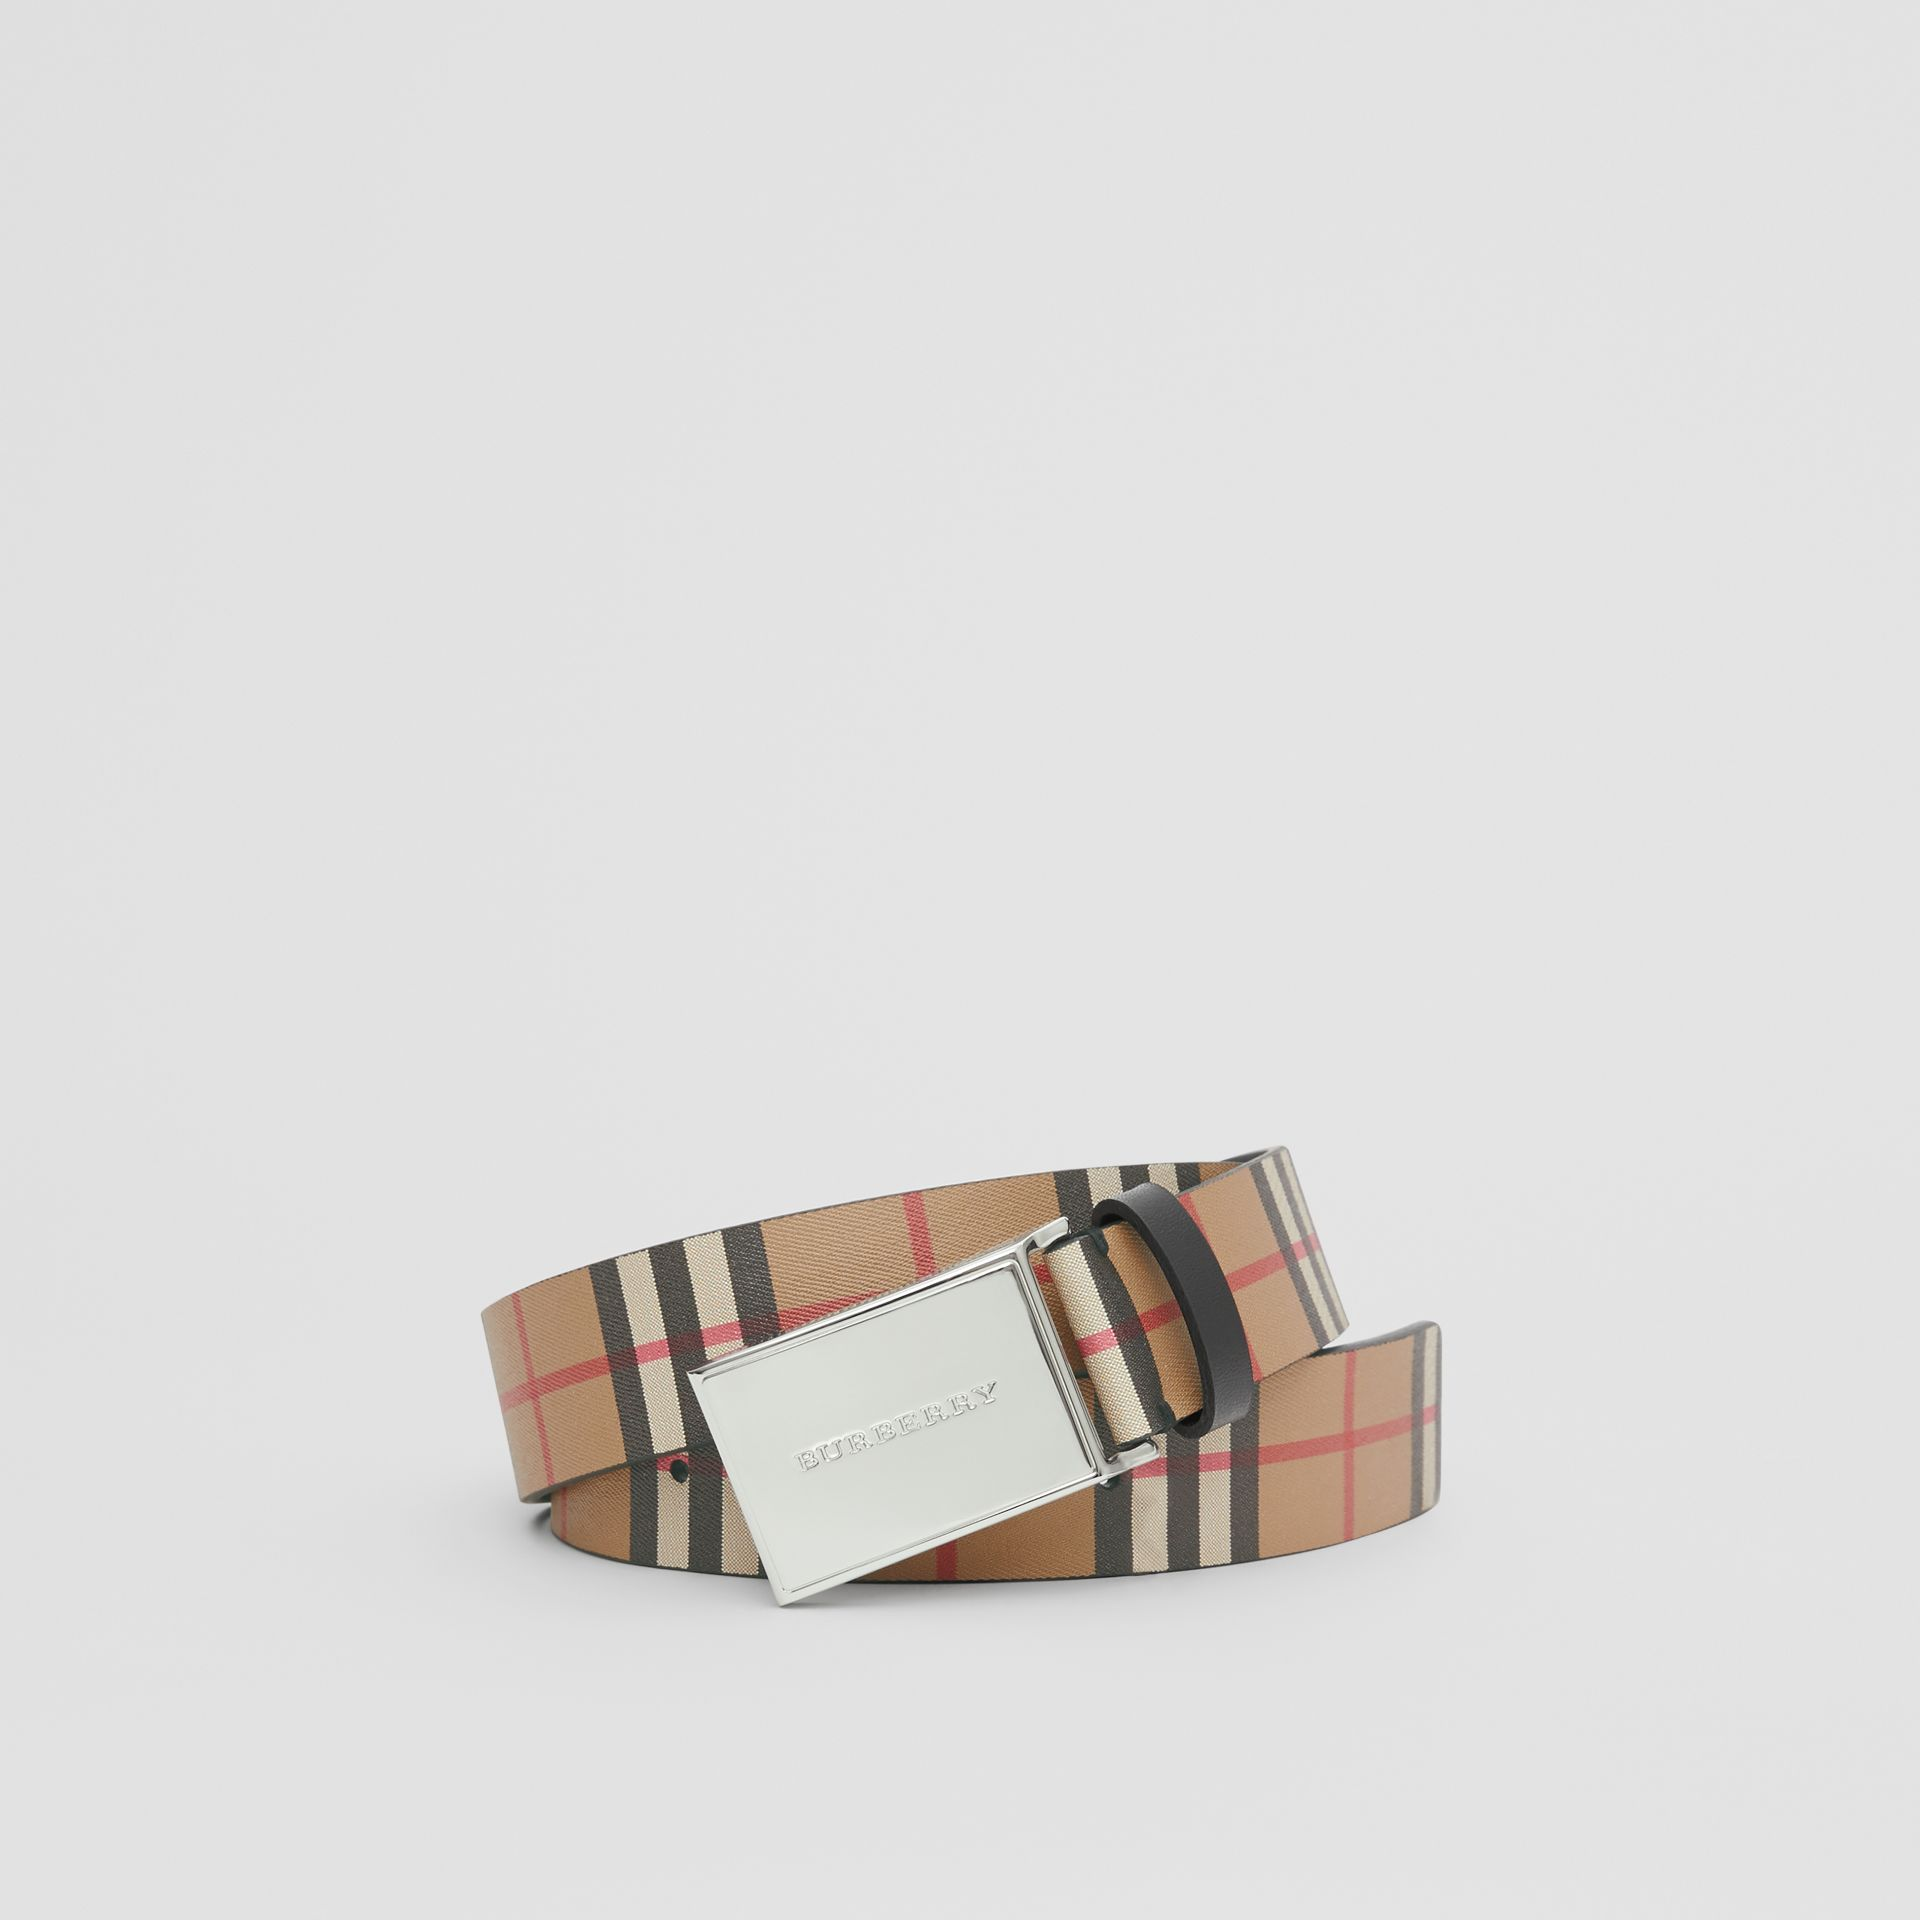 Plaque Buckle Vintage Check Leather Belt in Black - Men | Burberry United Kingdom - gallery image 0